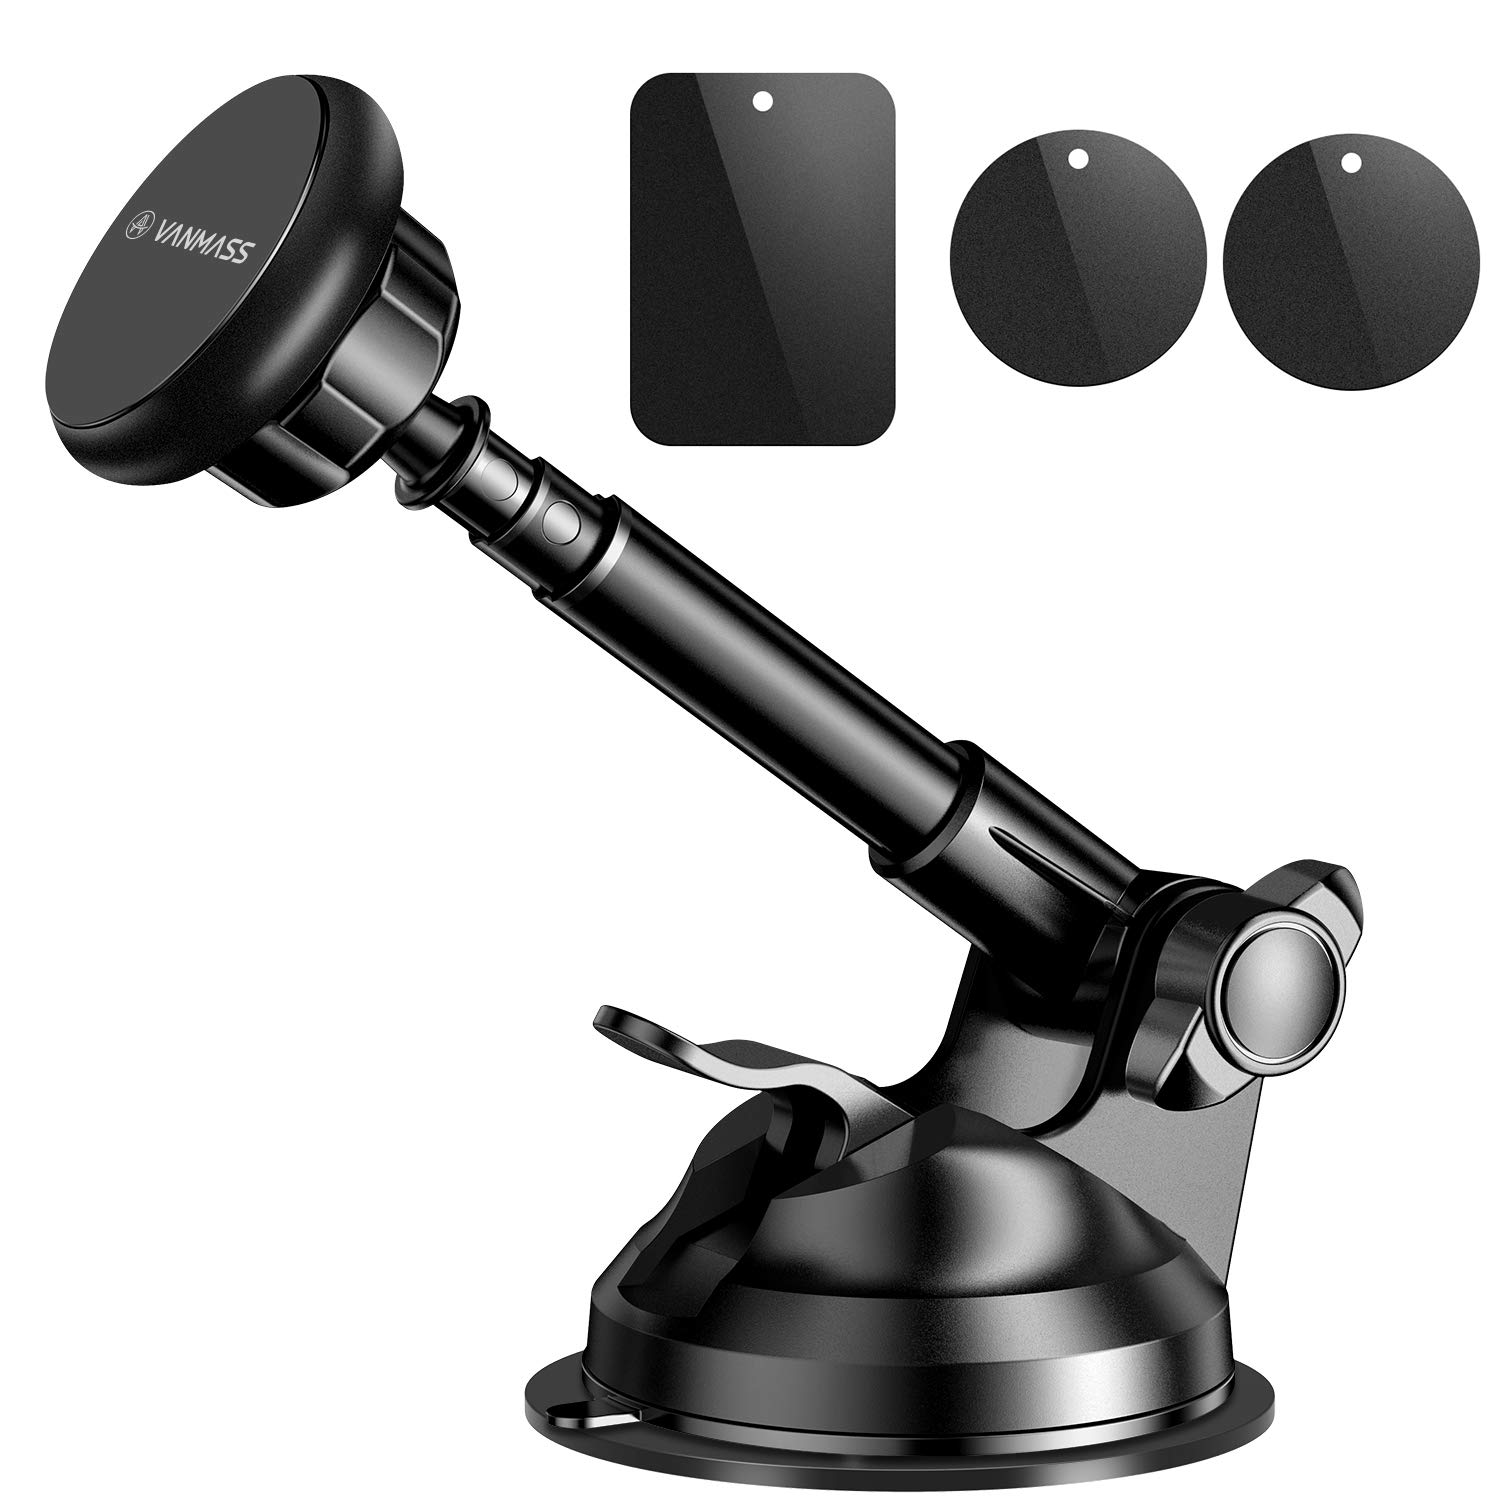 VANMASS Magnetic Phone Car Mount, Universal Phone Holder for Car Dashboard and Windshield, 360° Rotation with 6 Strong Magnets and Metal Telescopic Arm, Compatible with 3.5''-7'' Phone